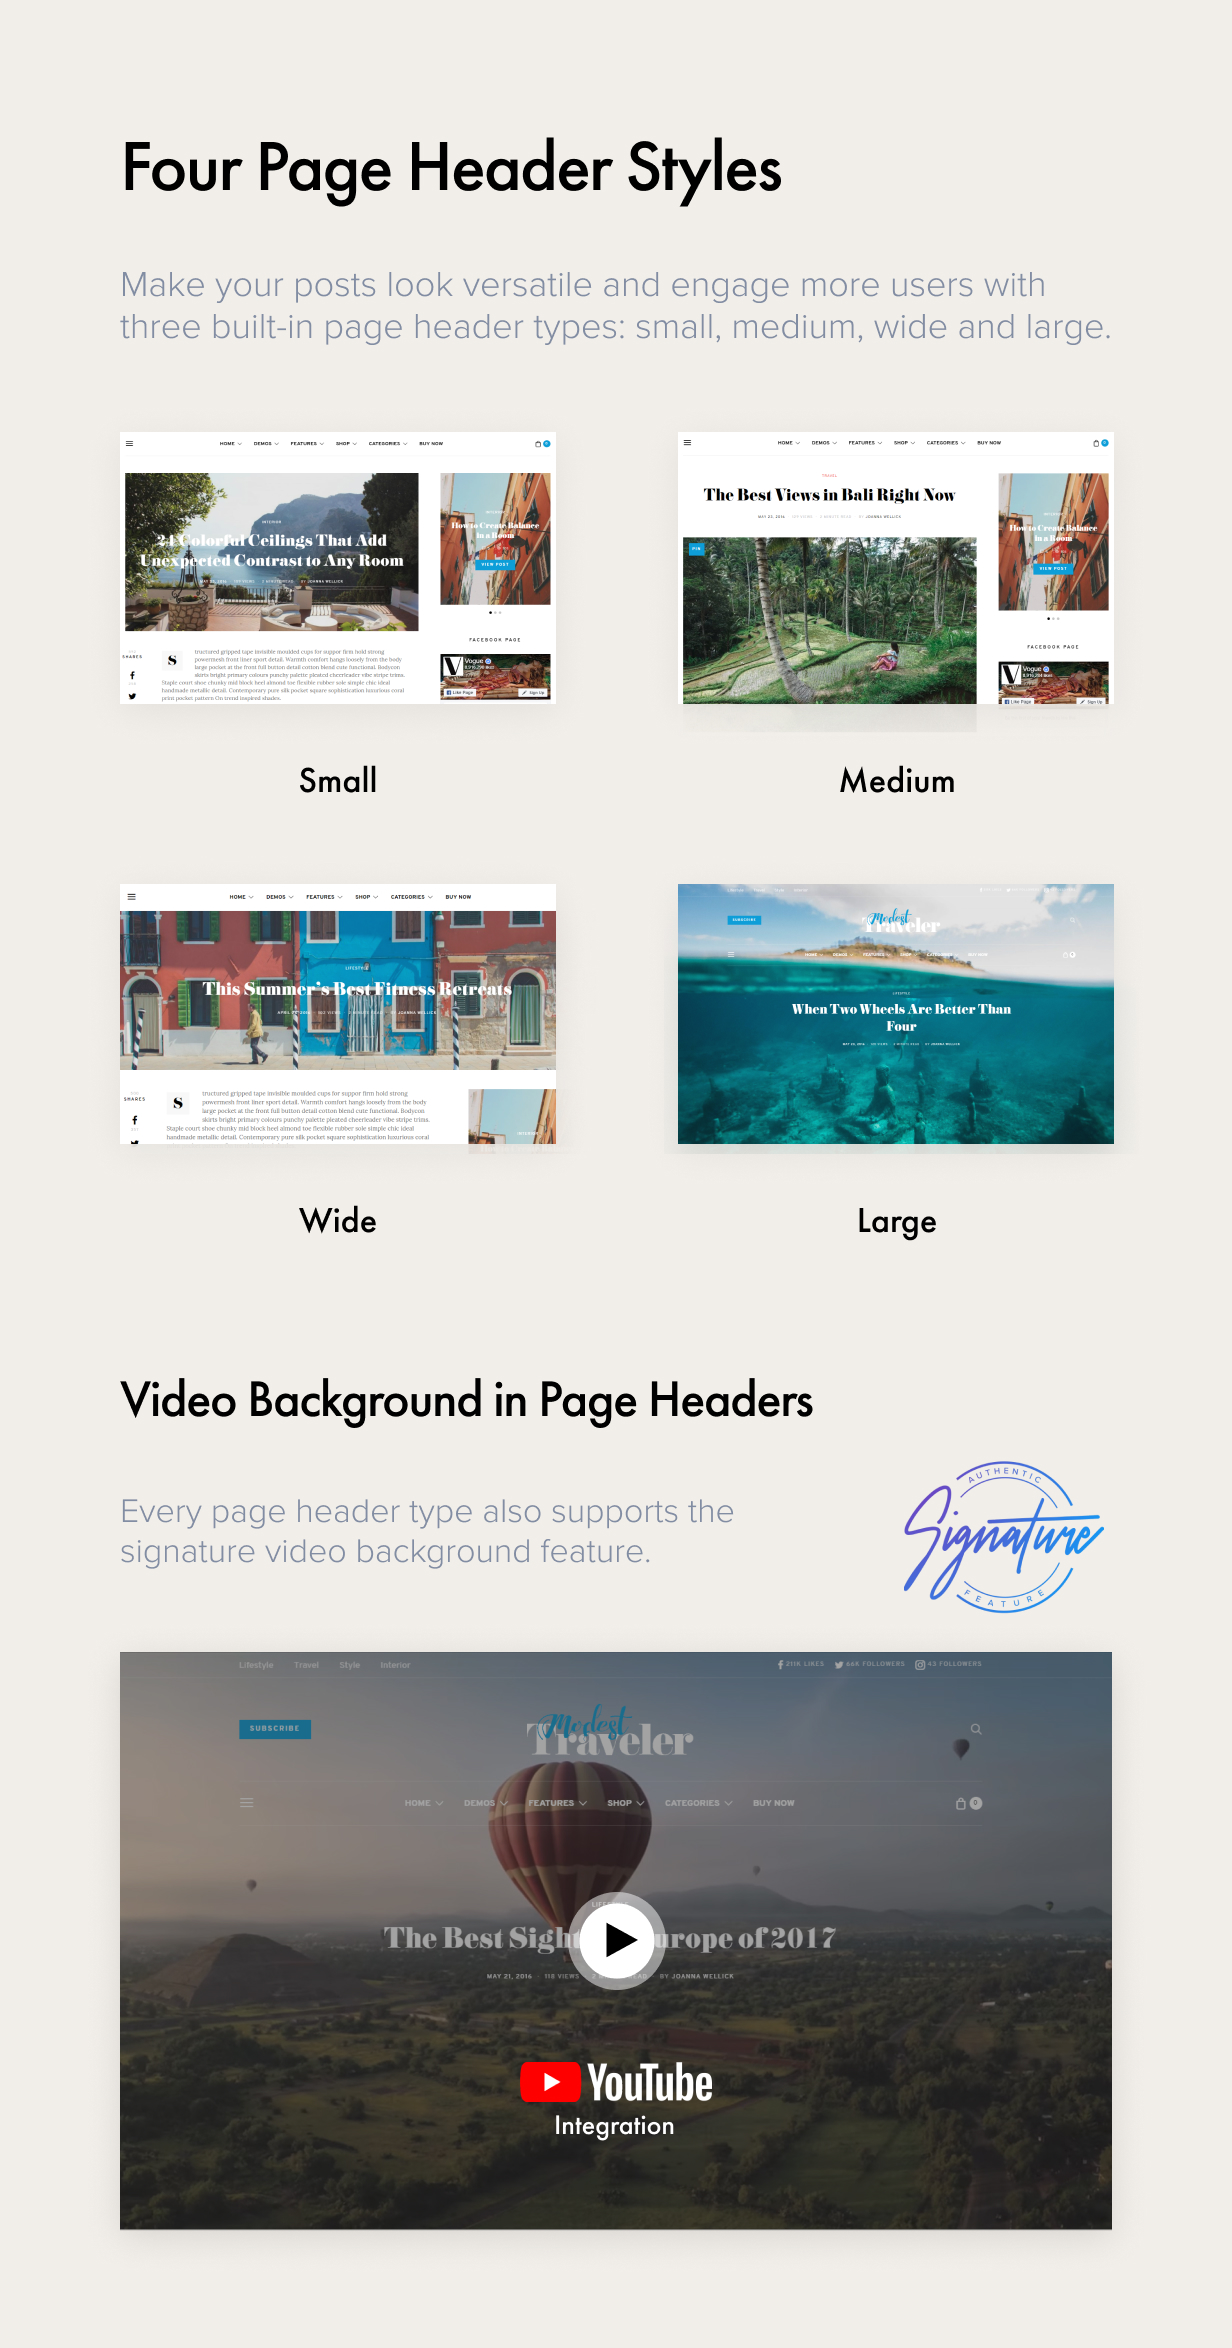 page header styles - Authentic - Lifestyle Blog & Magazine WordPress Theme